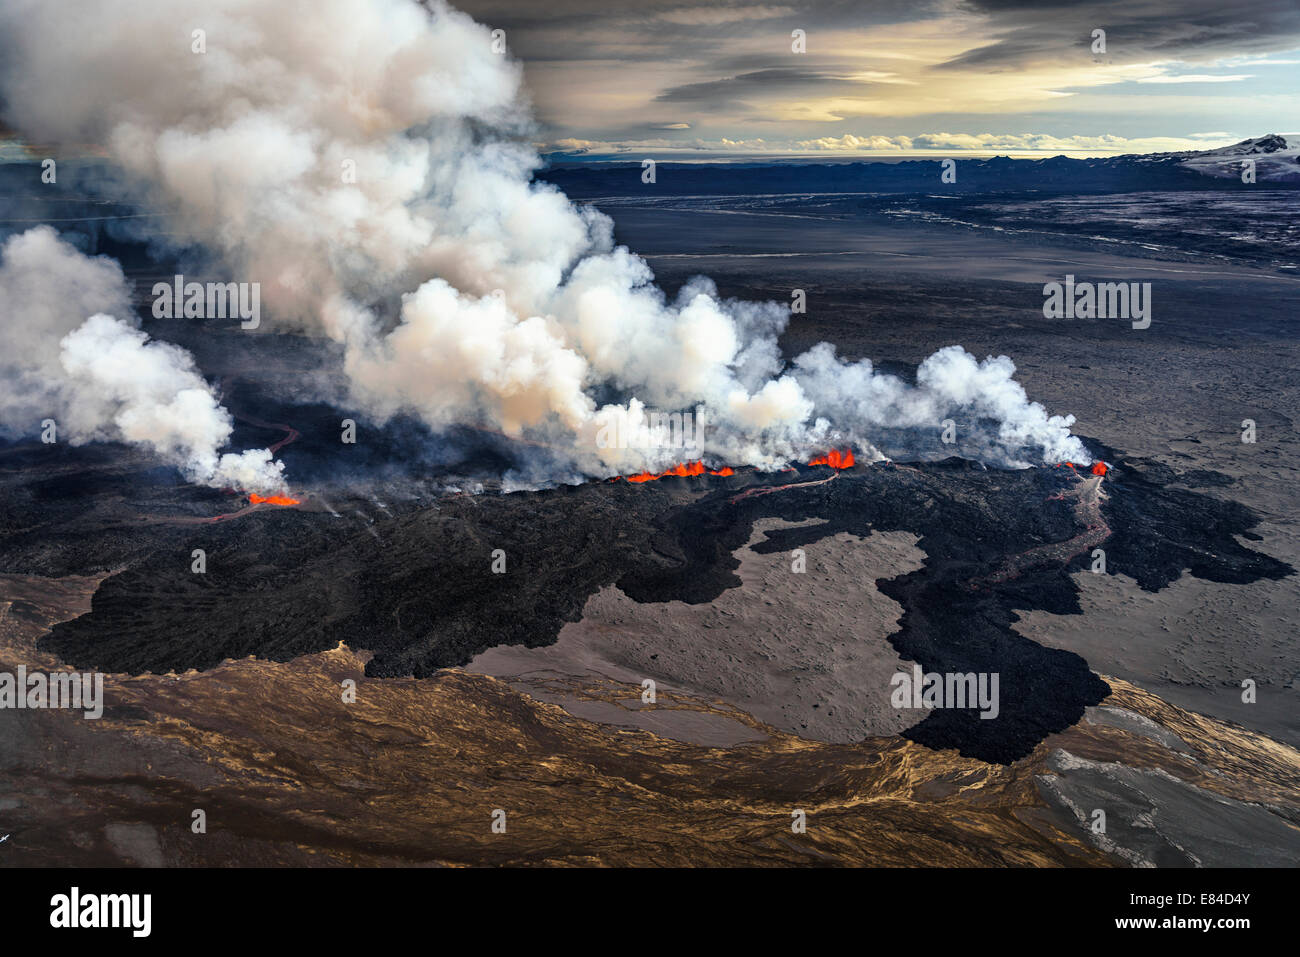 Lava and plumes from the Holuhraun Fissure Eruption, near the Bardarbunga Volcano, Iceland. - Stock Image